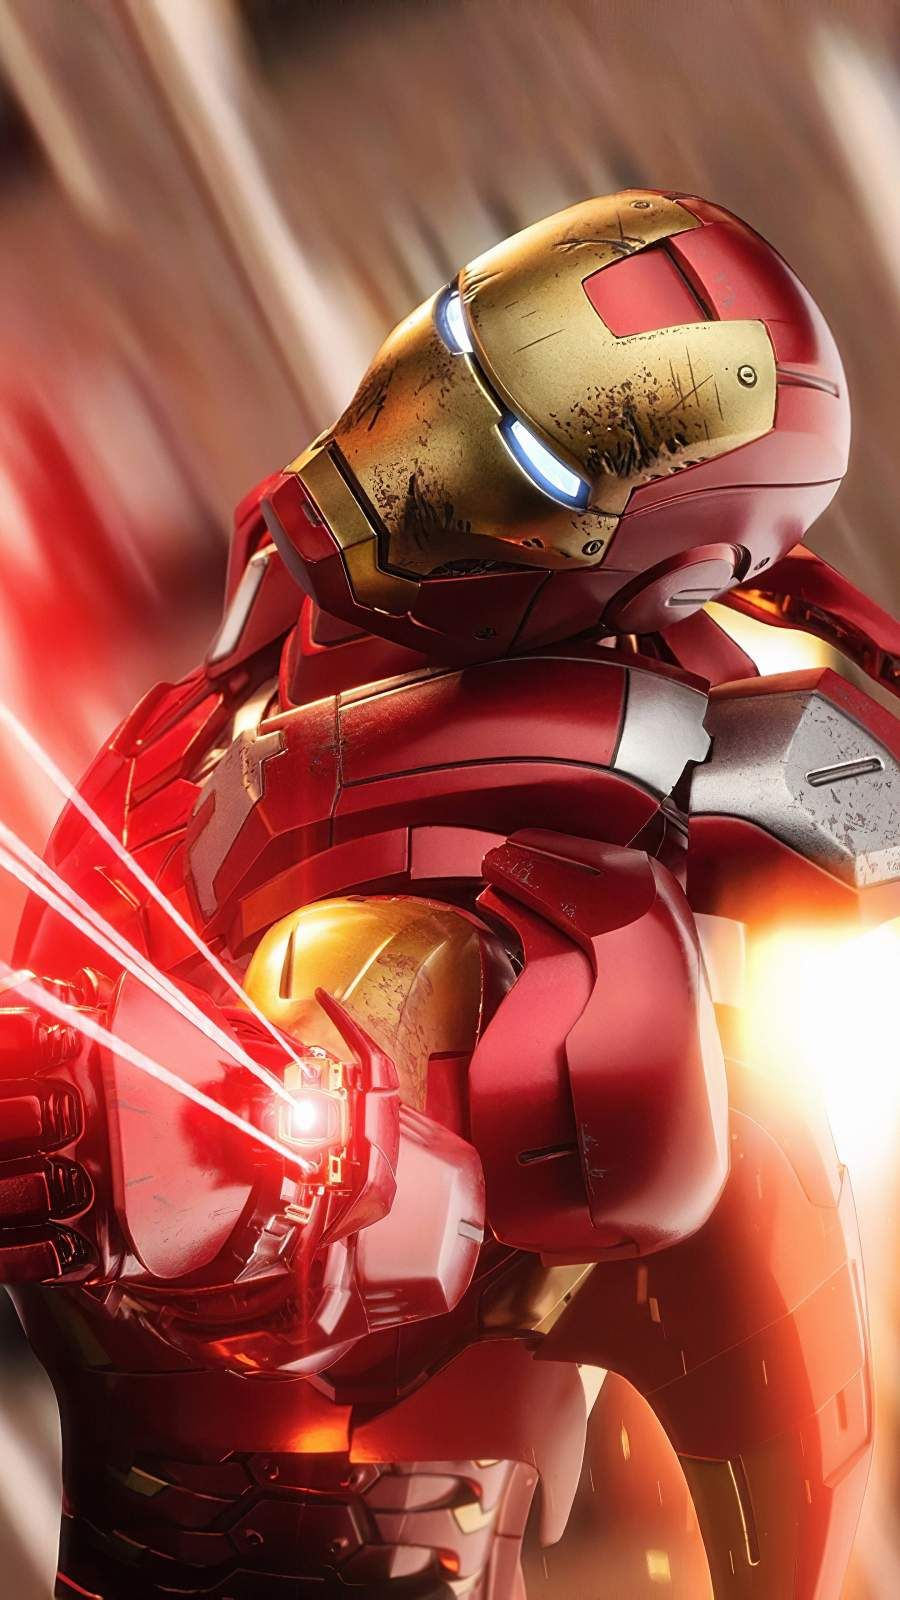 Iron Man Fight 4k Iphone Wallpaper Marvel Comics Wallpaper Iron Man Hd Wallpaper Marvel Background